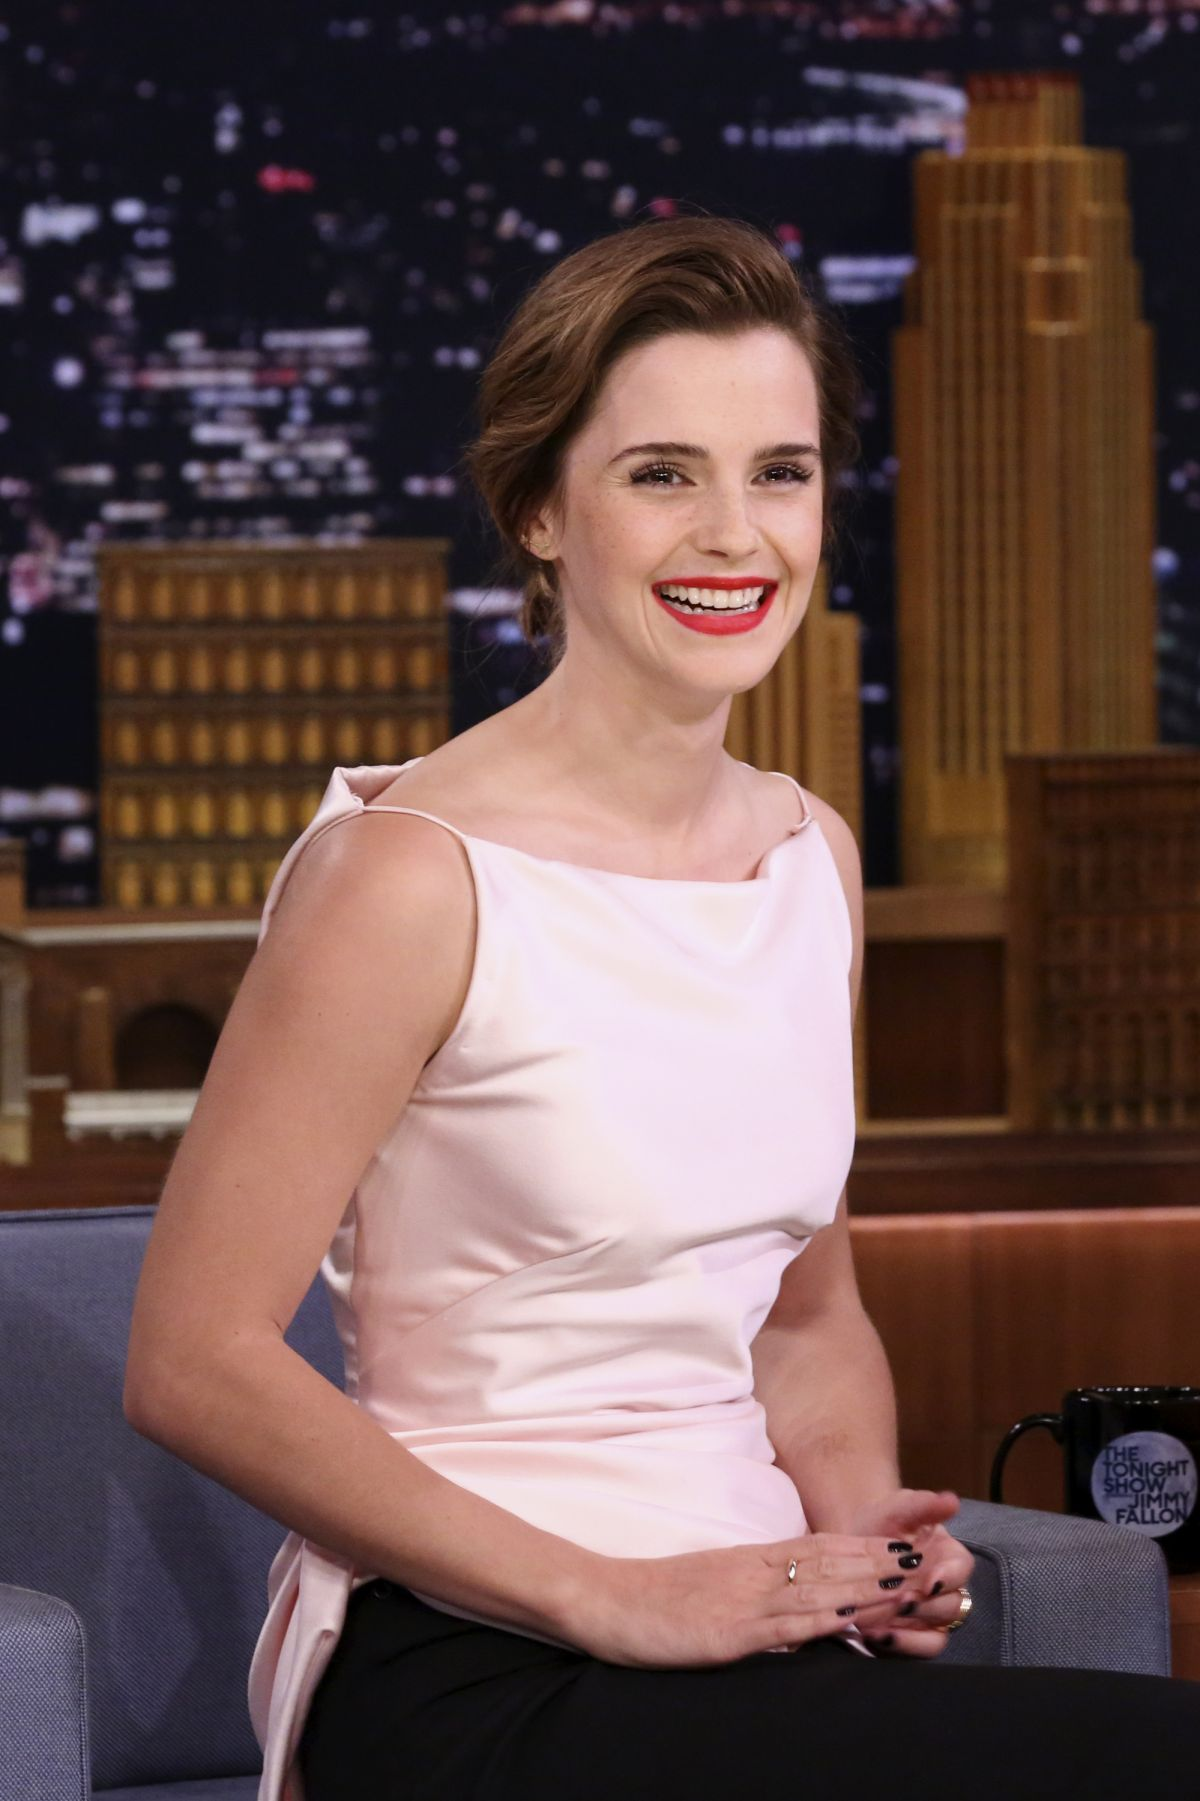 EMMA WATSON at Jimmy Fallon Show 04/27/2017